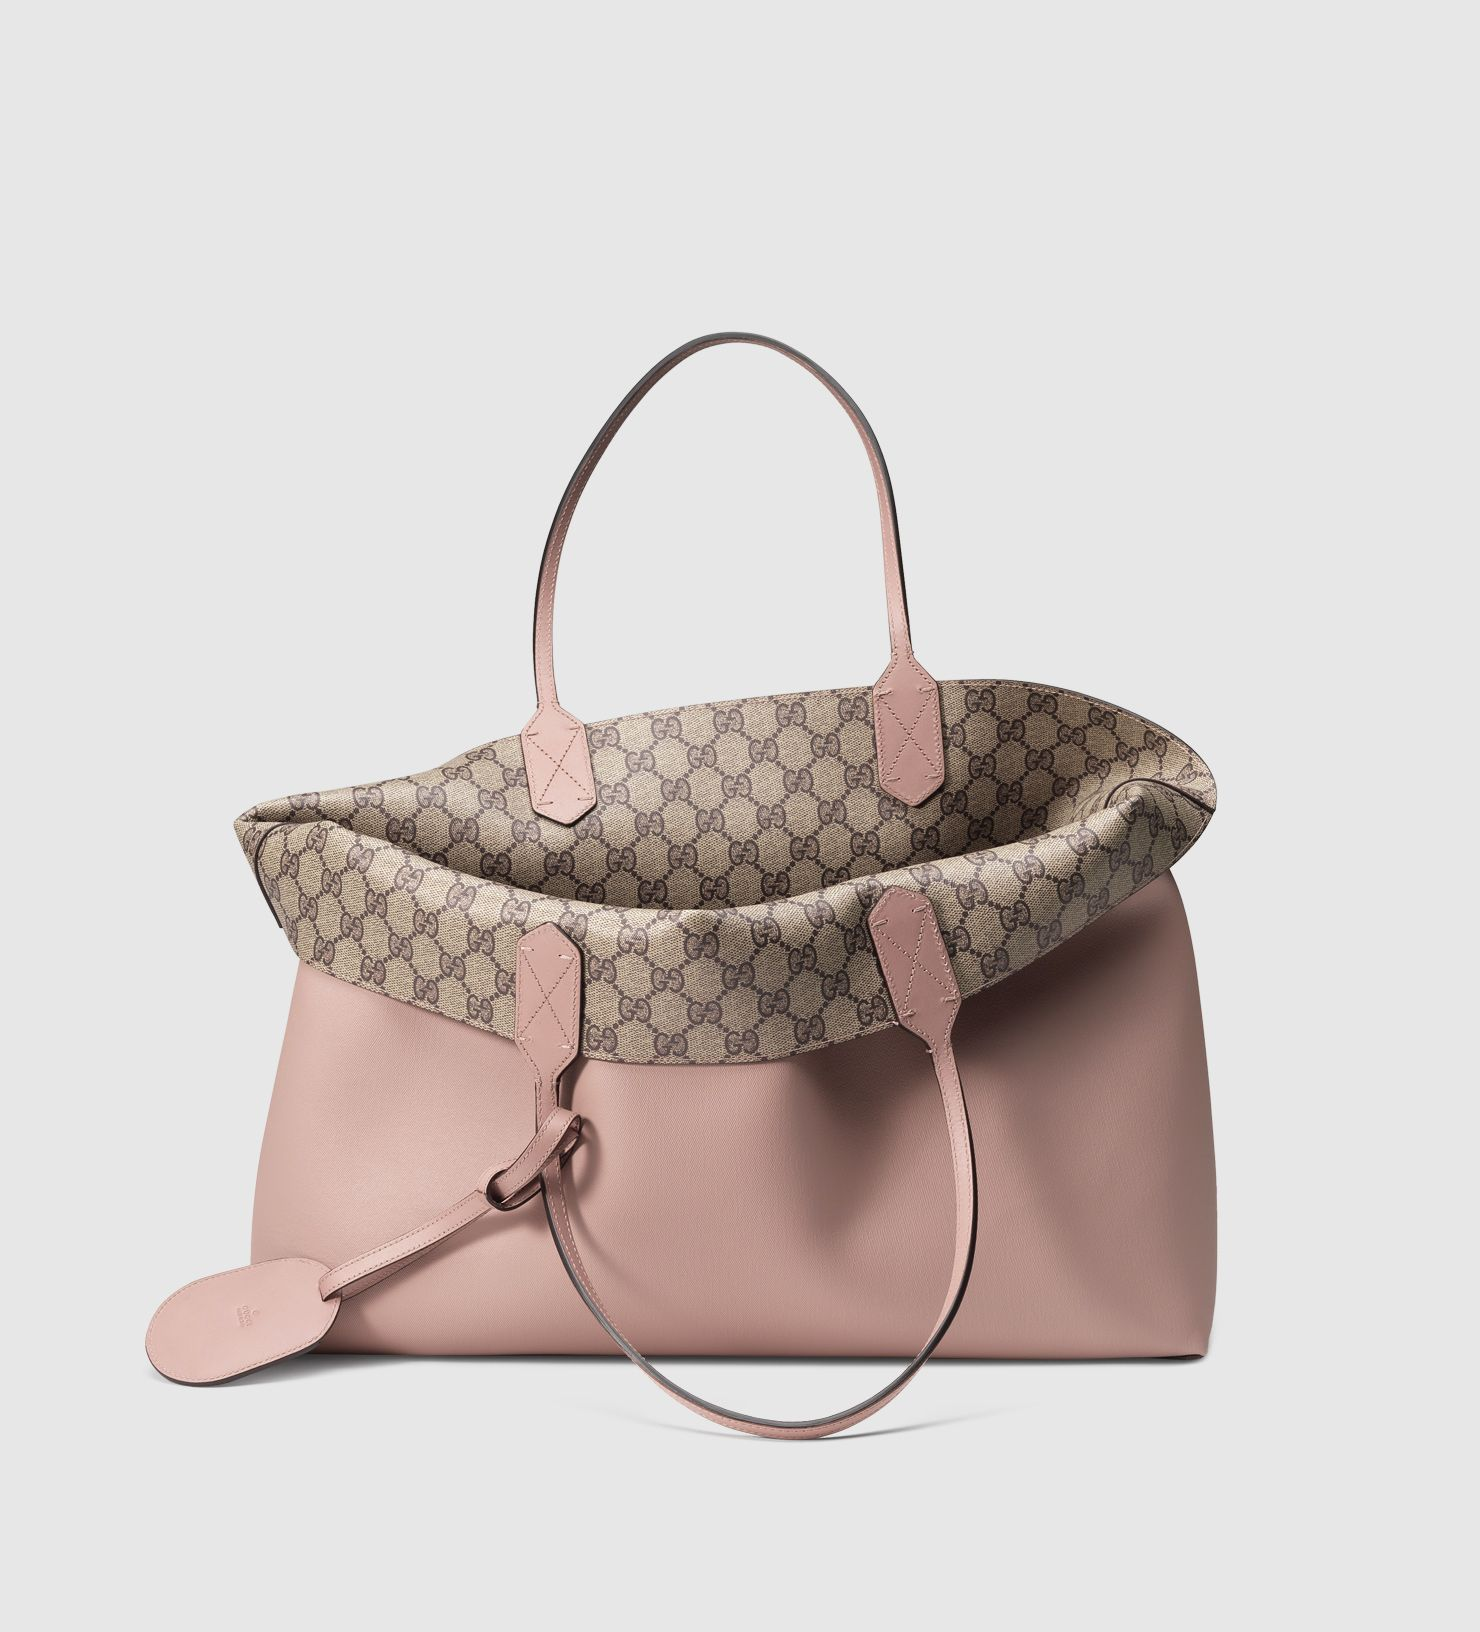 8c10f33af4f6 Gucci Reversible Tote - Designer Authentication Services for Handbags